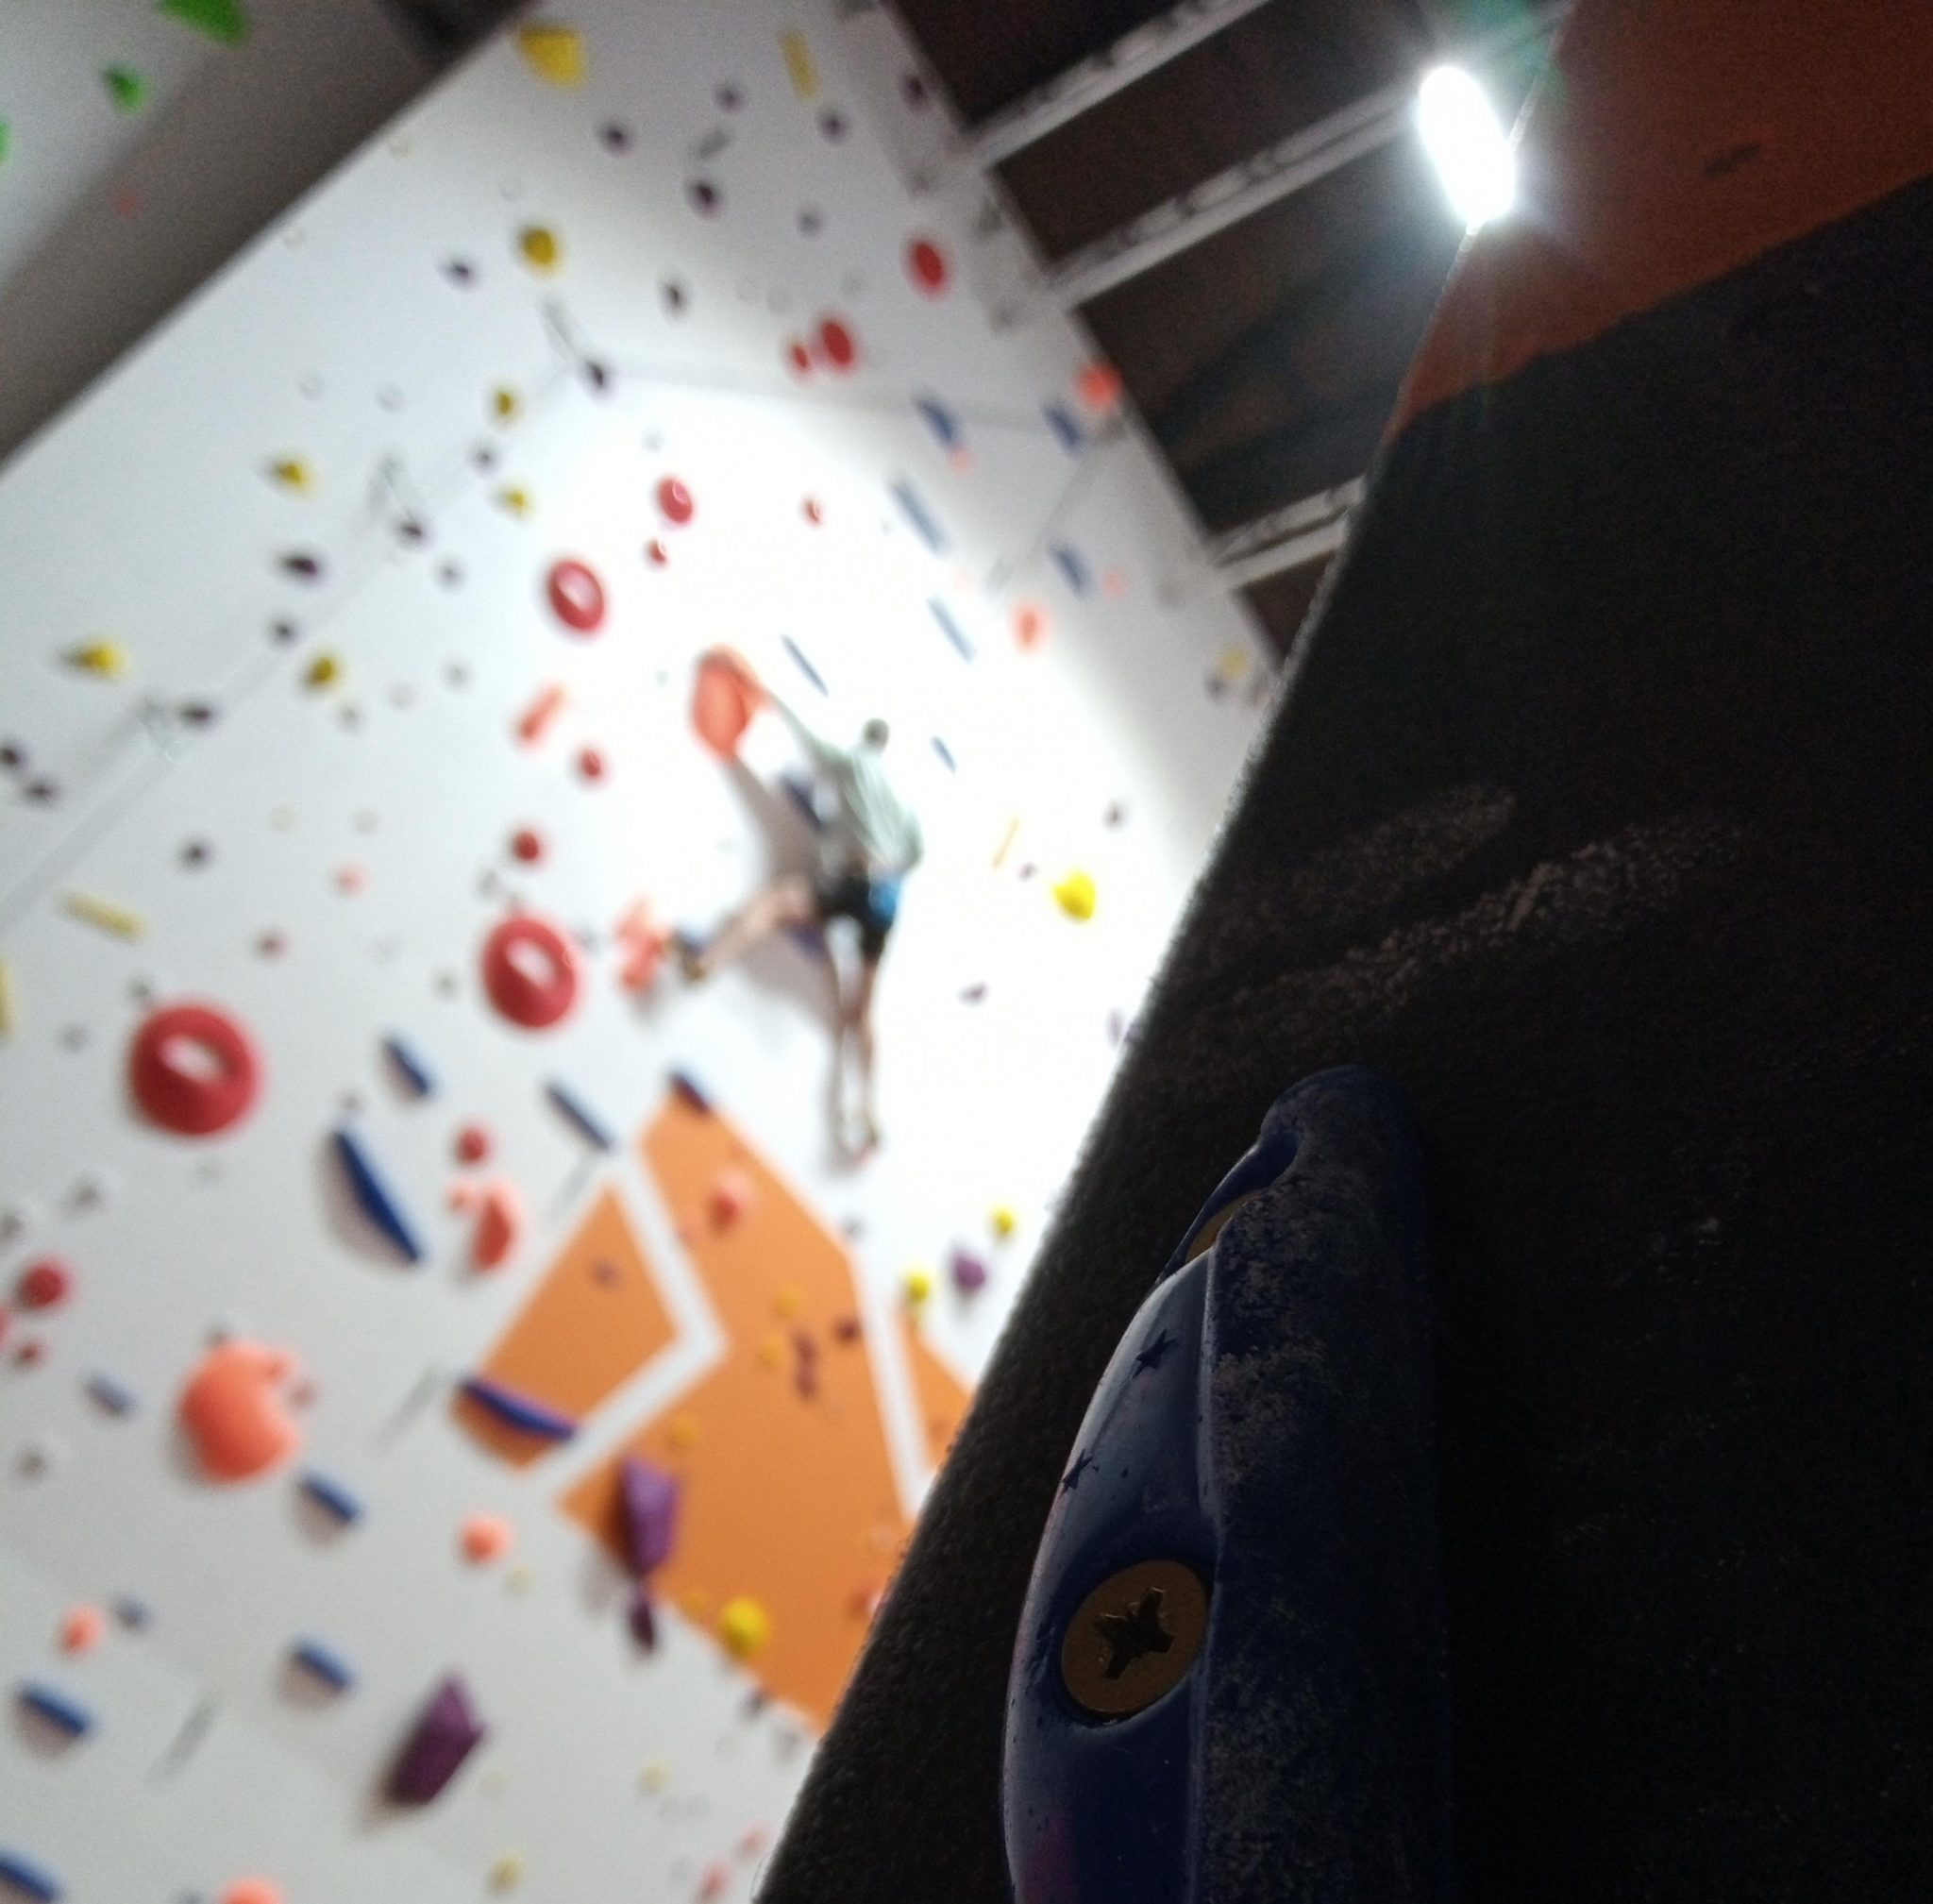 Overhang Climbing Centre Carmarthen close up hold and climber in background